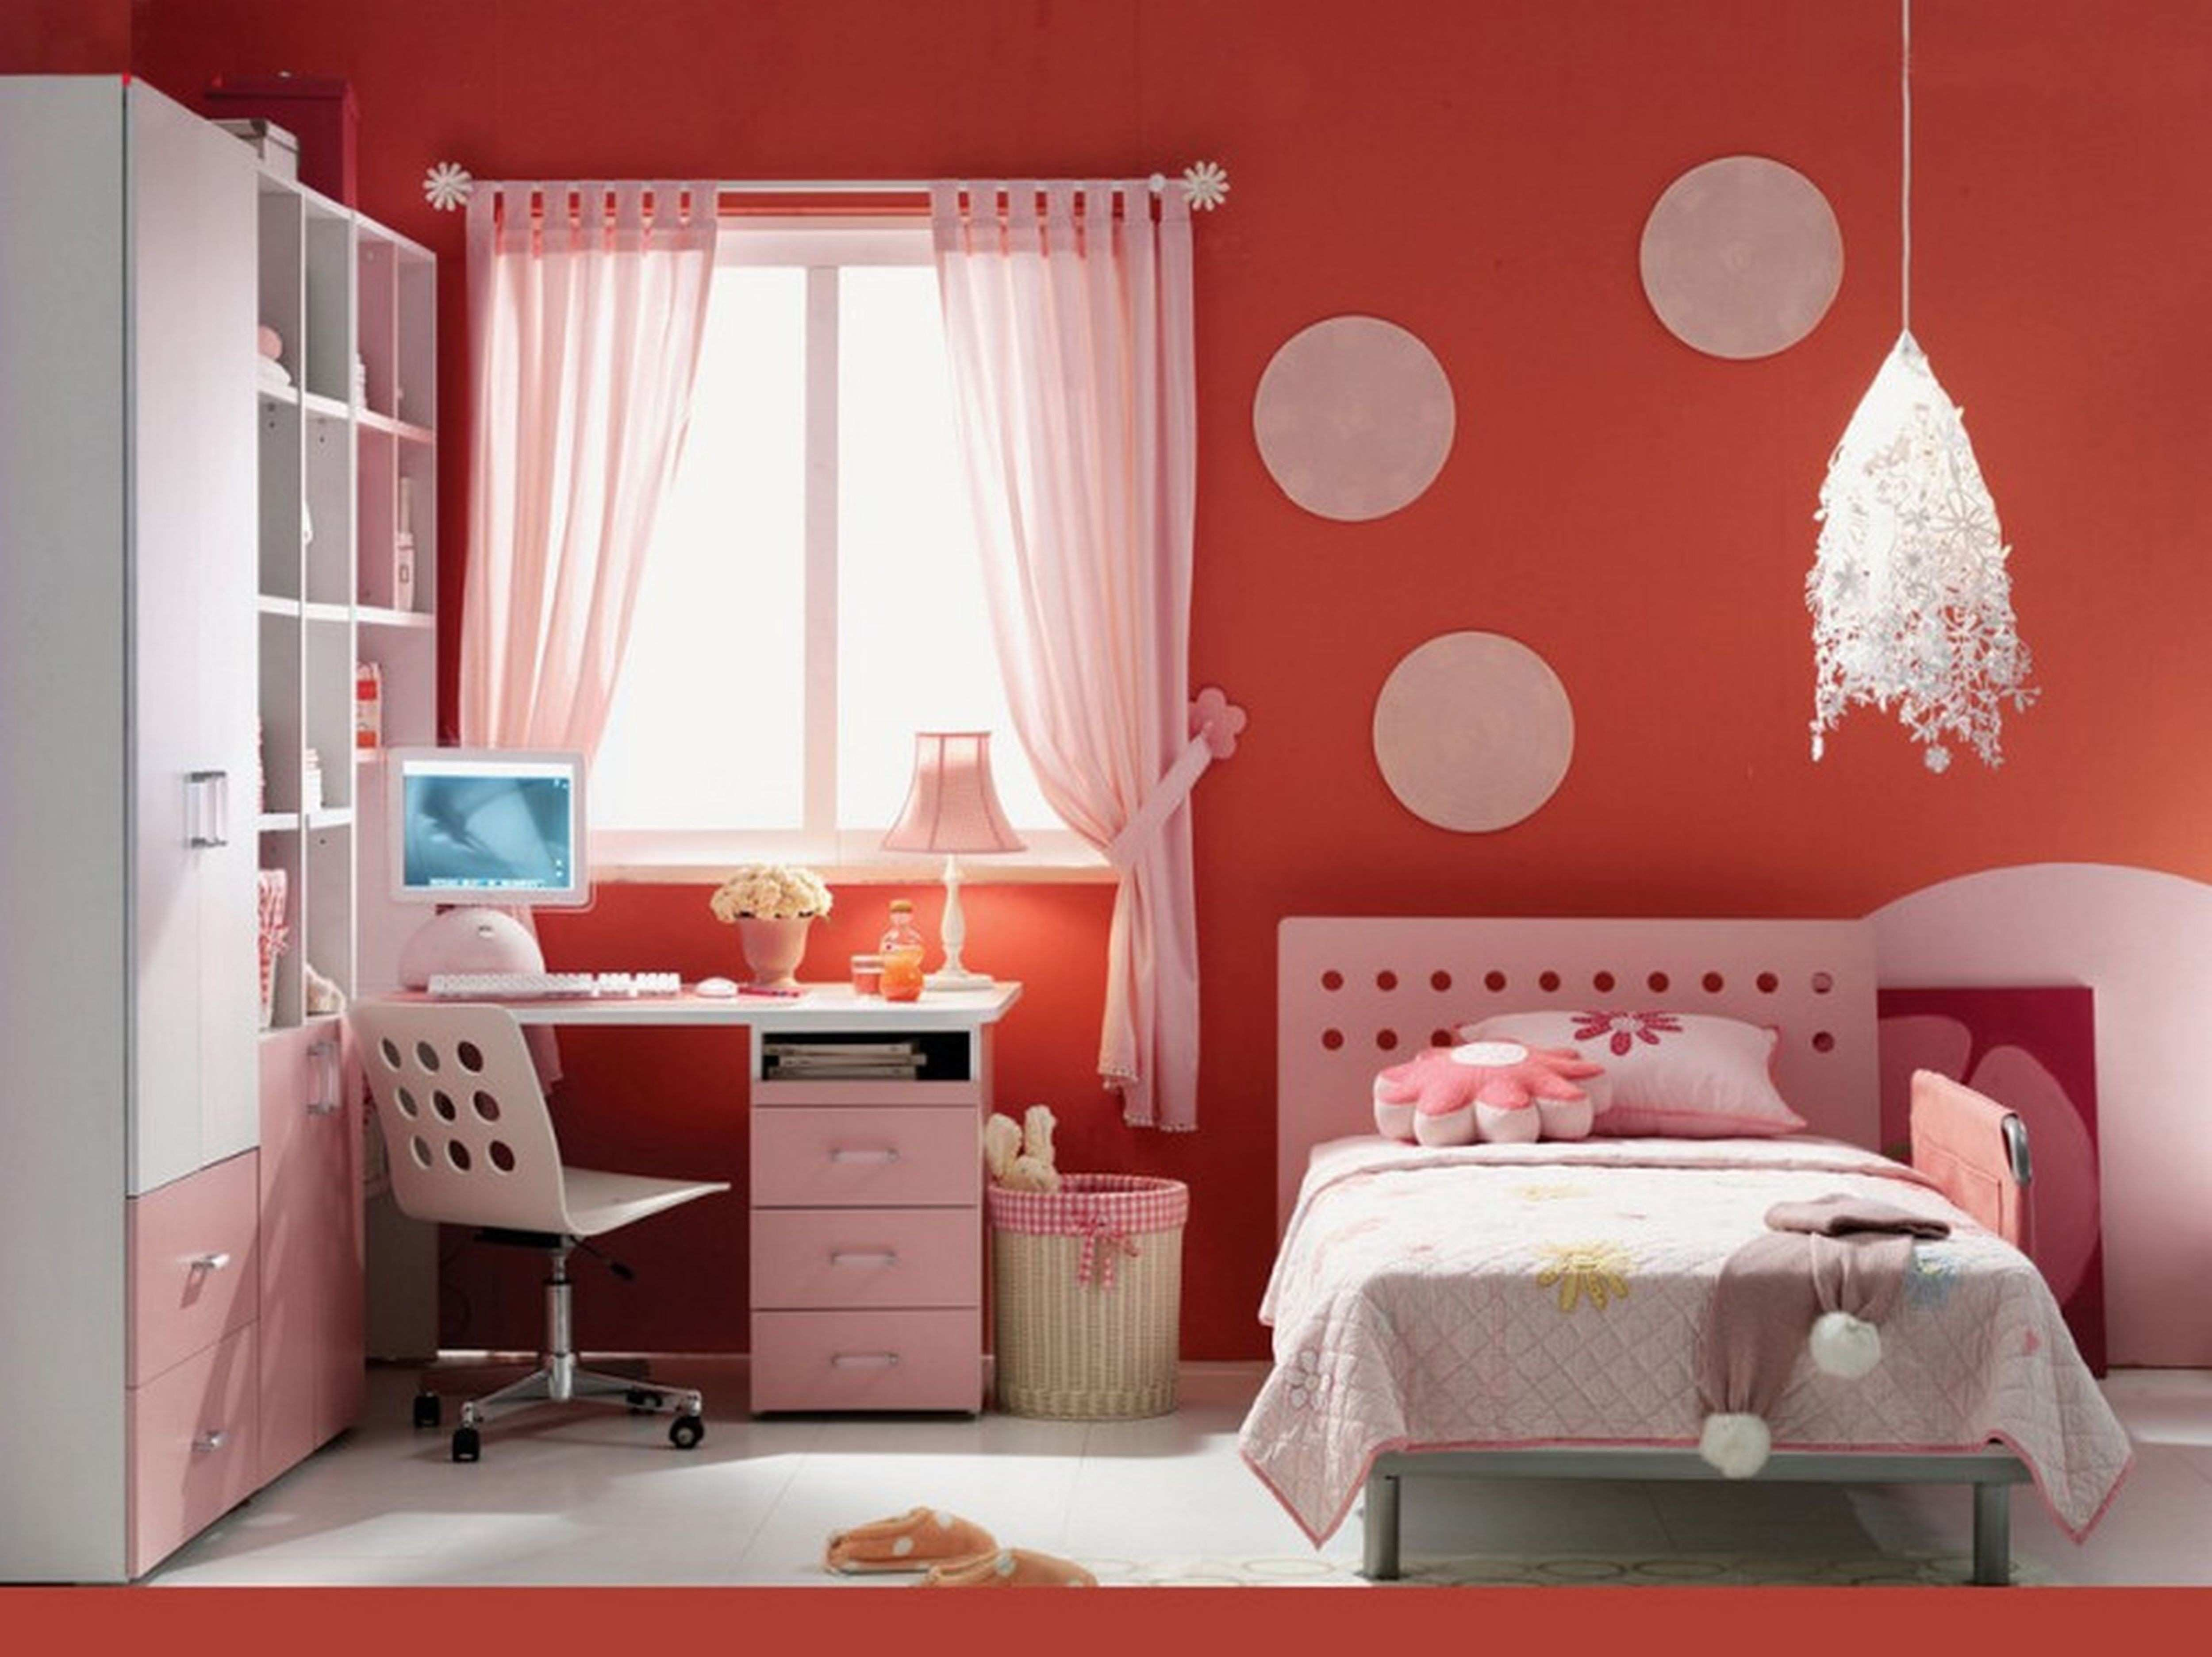 Unique Ideas to Decorate Walls Inspirational Ideas to Decorate Girls